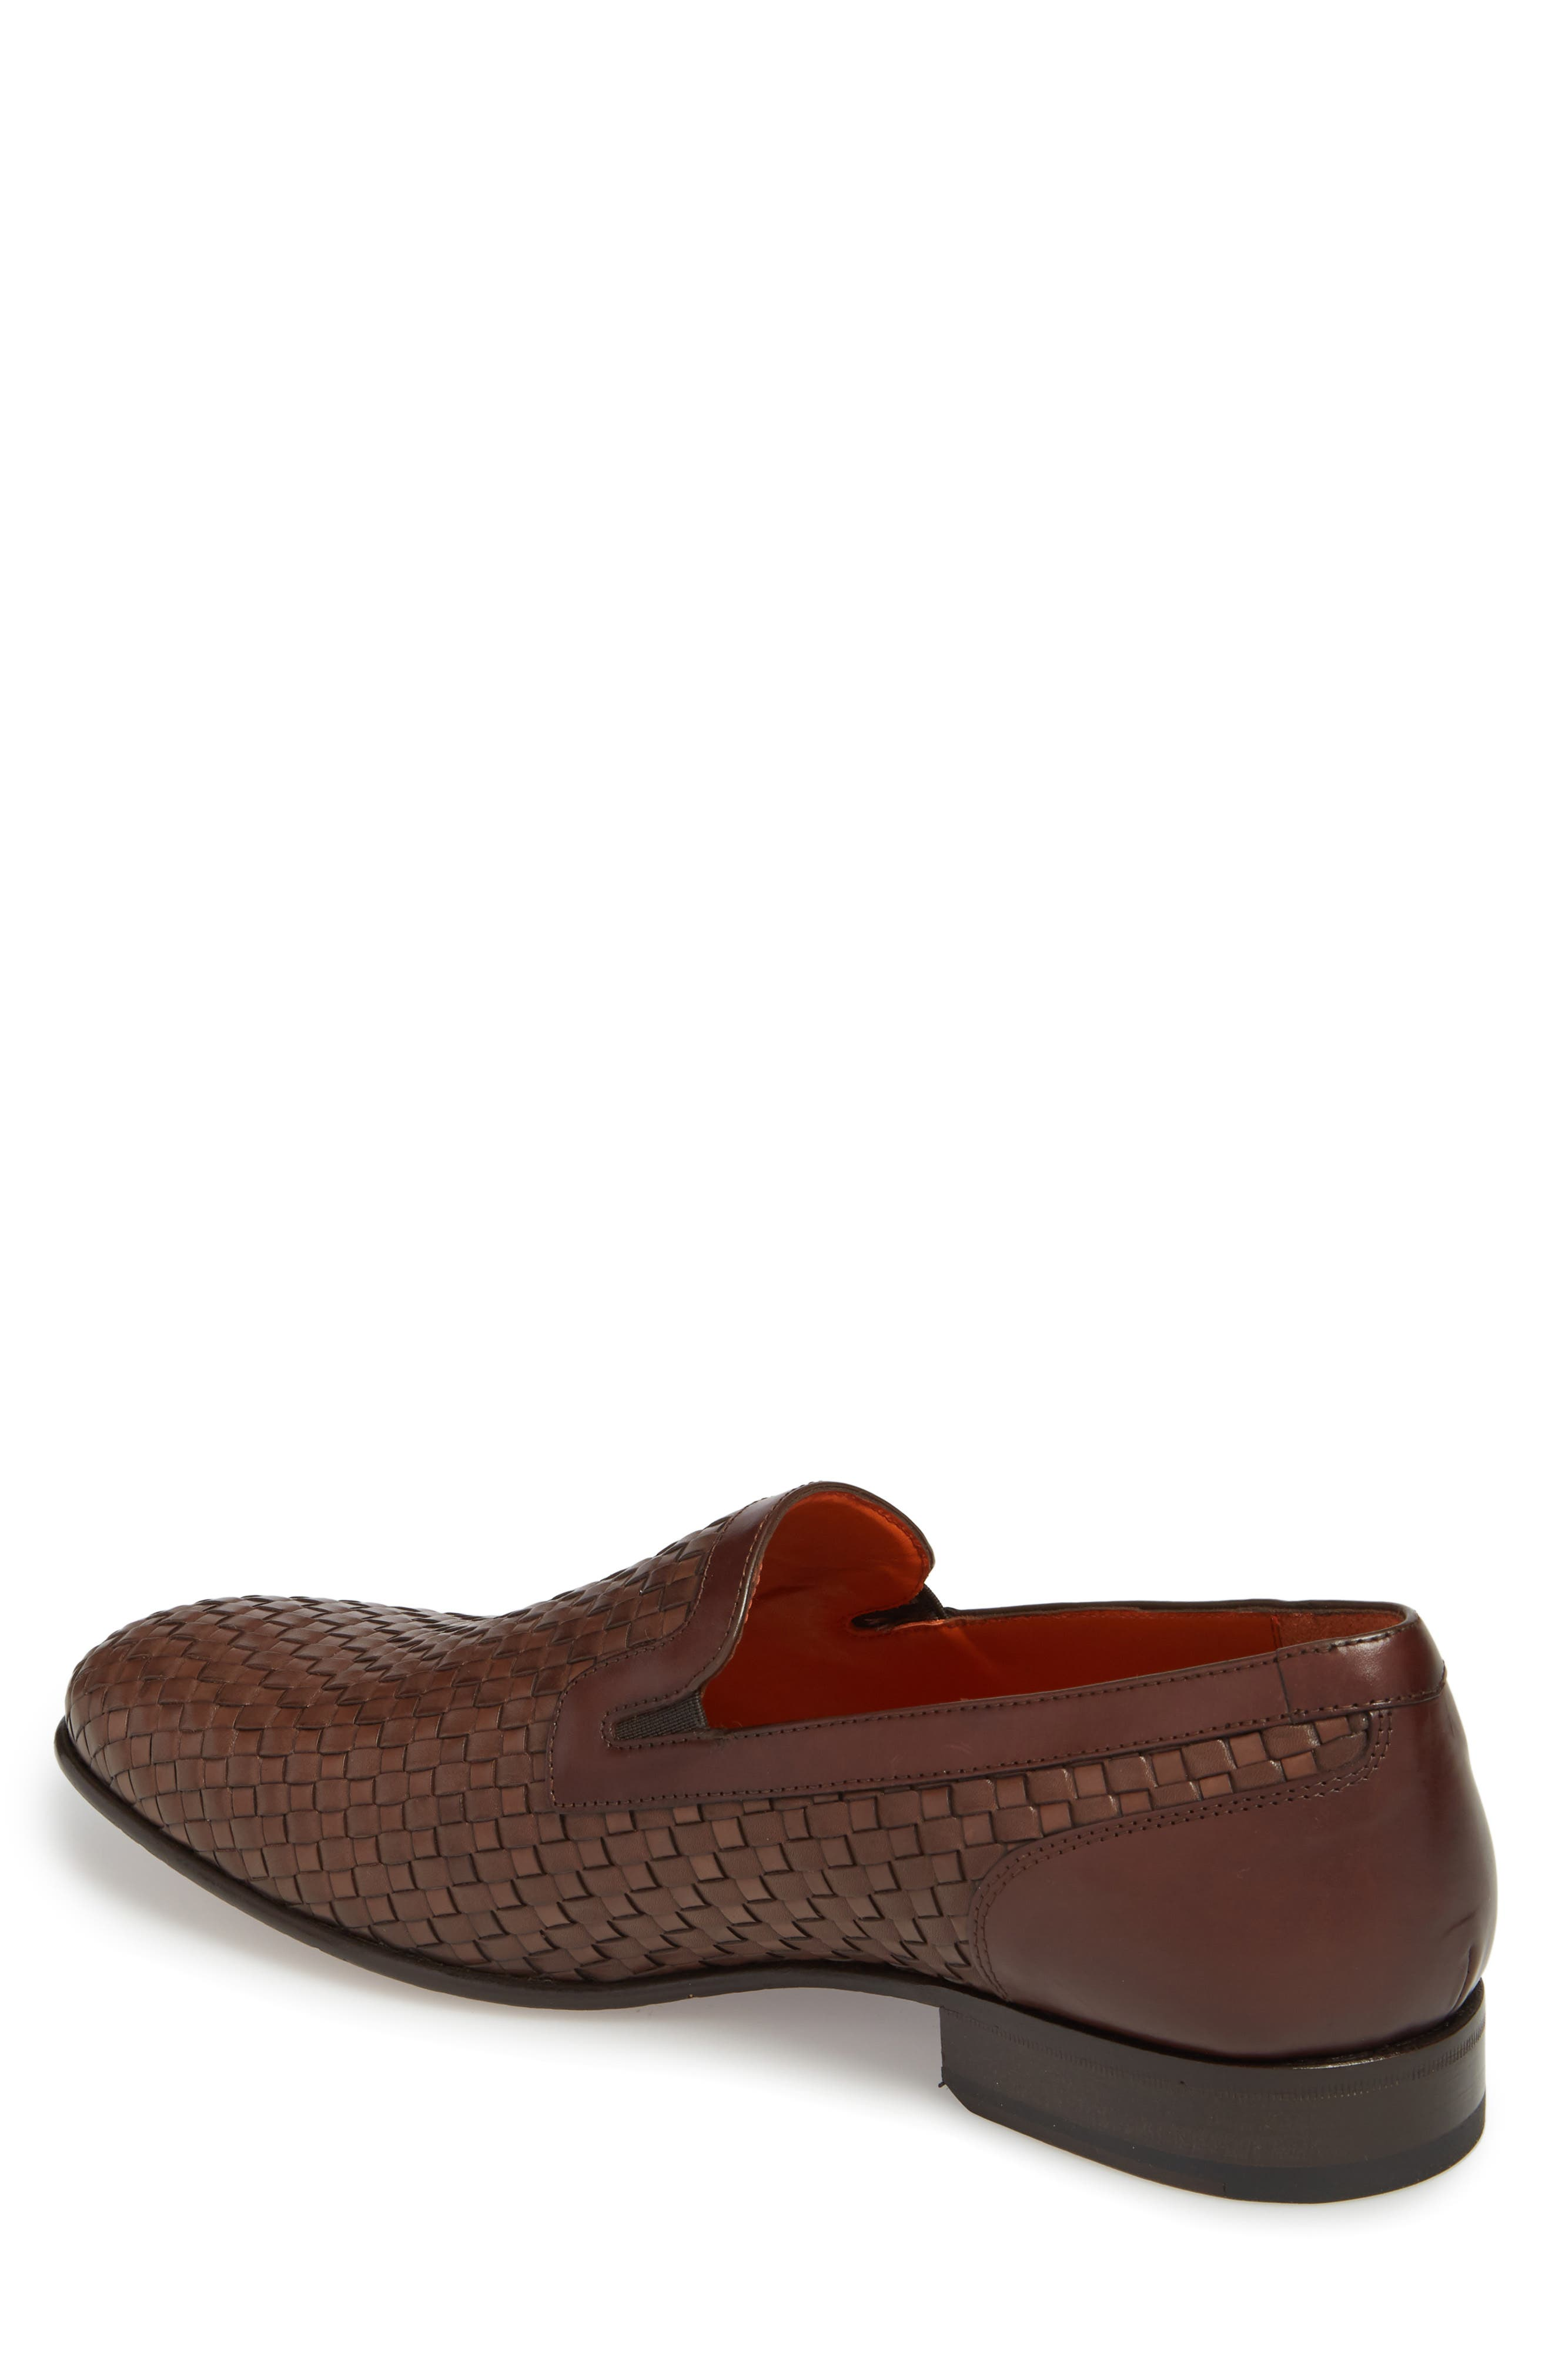 Eliseo Woven Venetian Loafer,                             Alternate thumbnail 2, color,                             Brown Leather